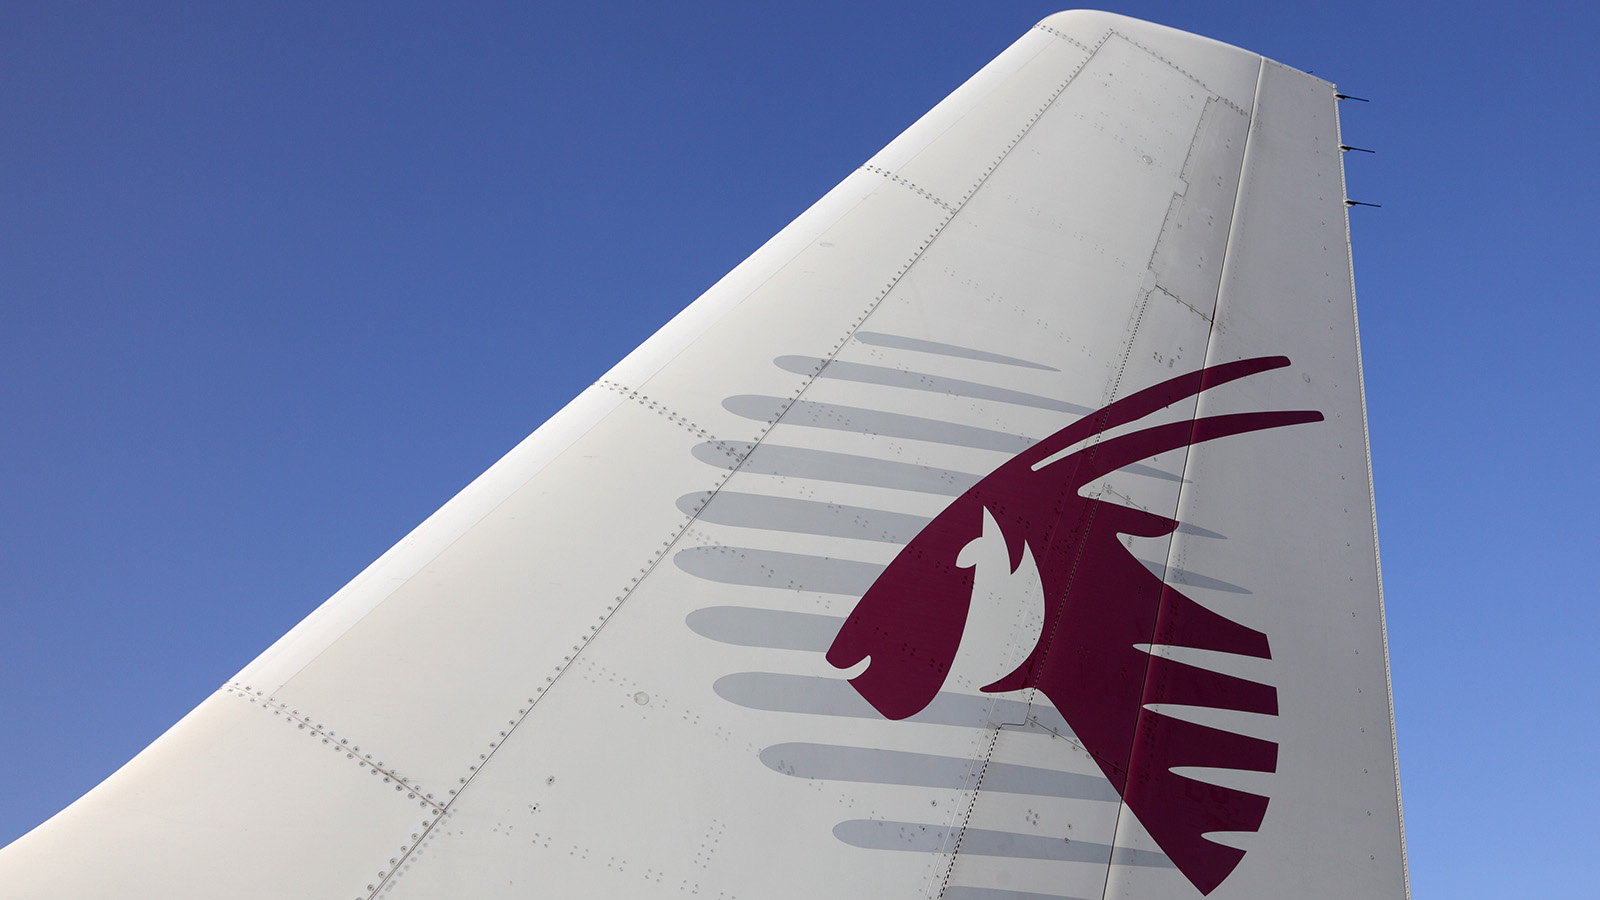 Qatar Airways receives special award for safety performance